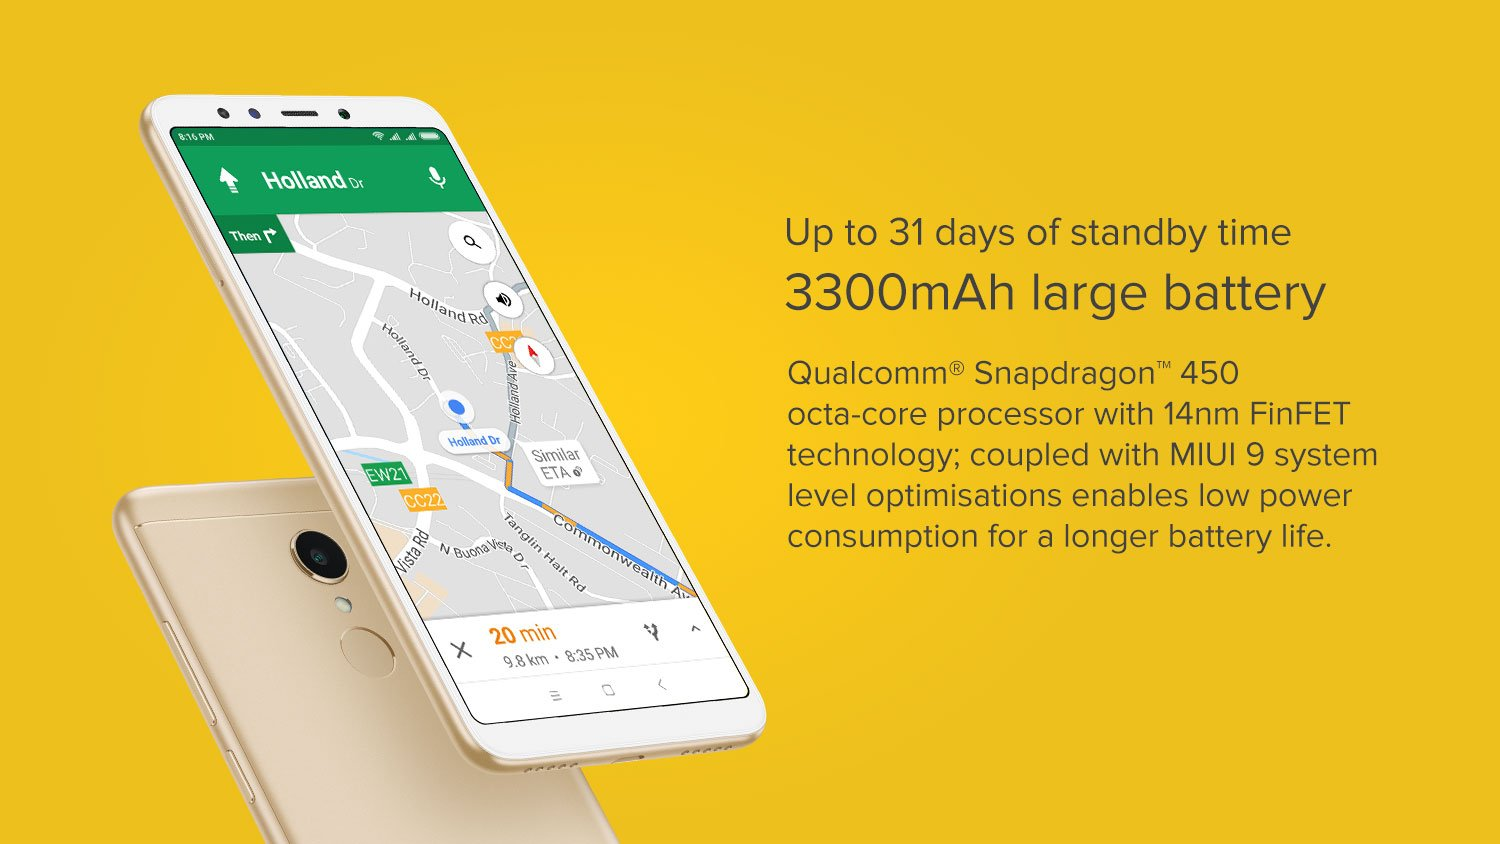 3300 mAH large battery